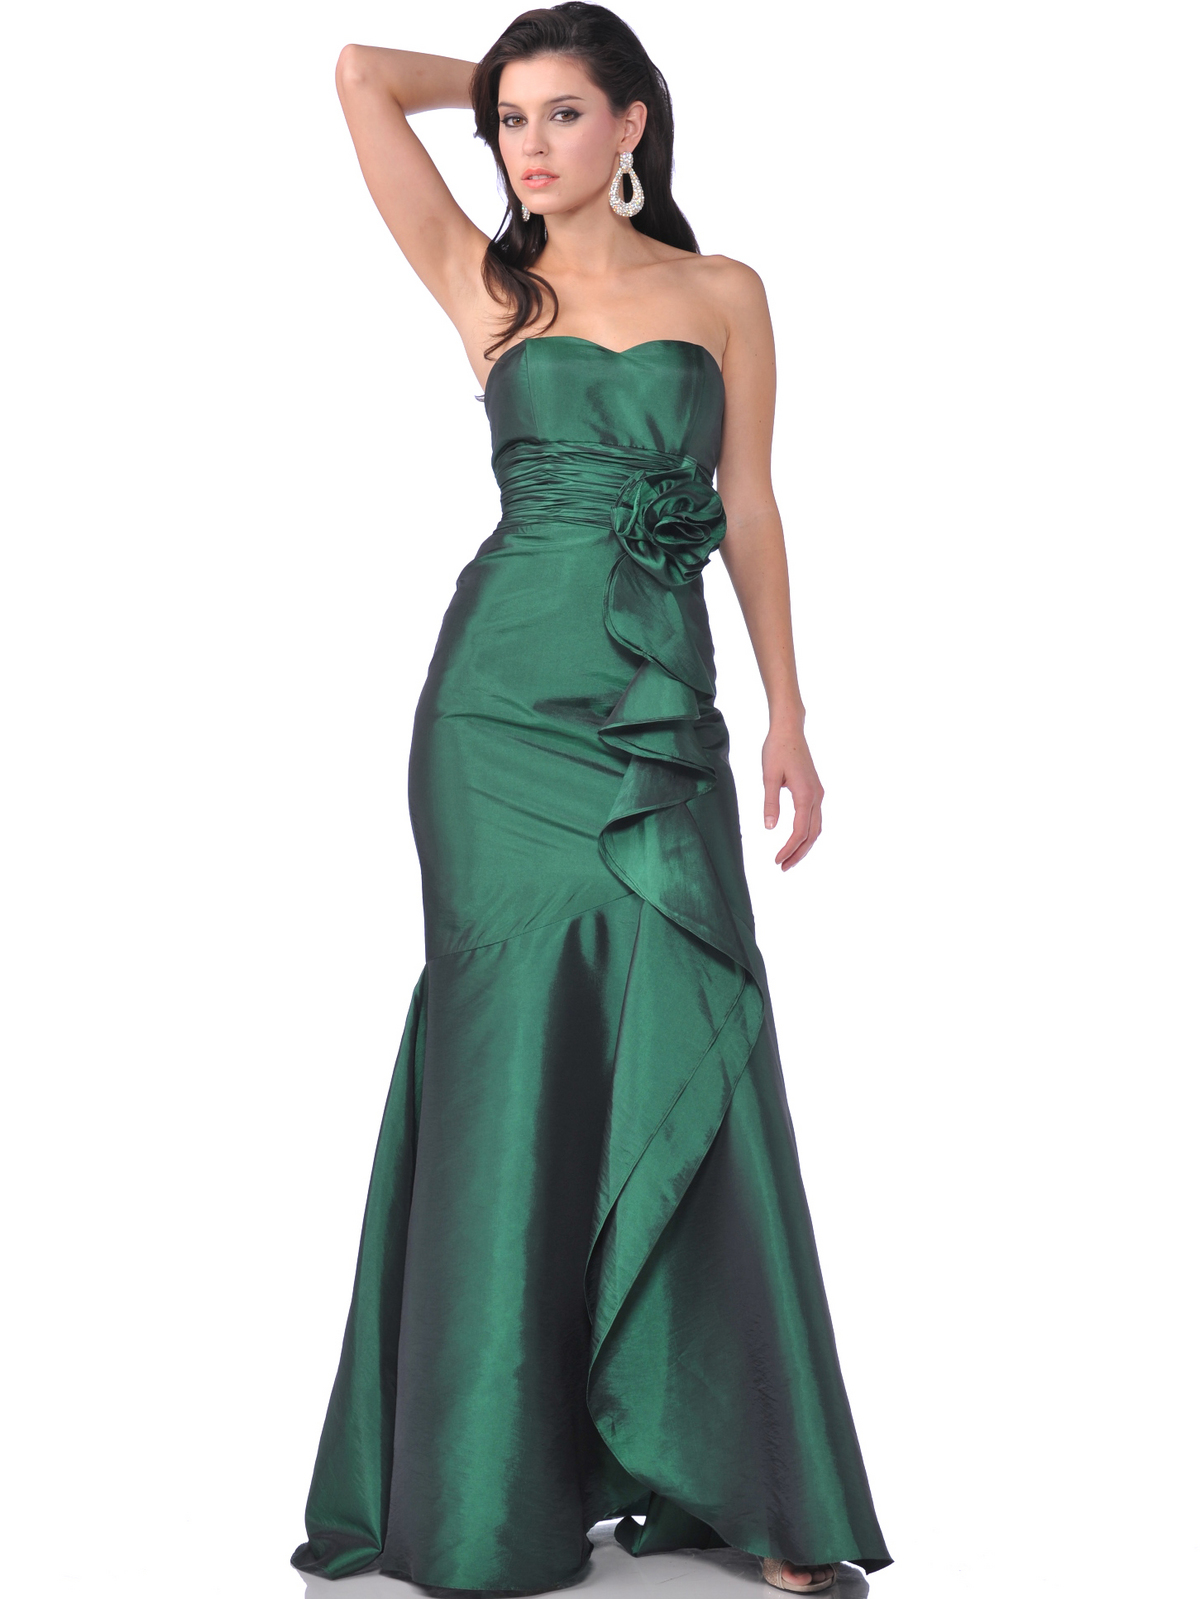 Strapless Evening Dress With Rosette Decore Sung